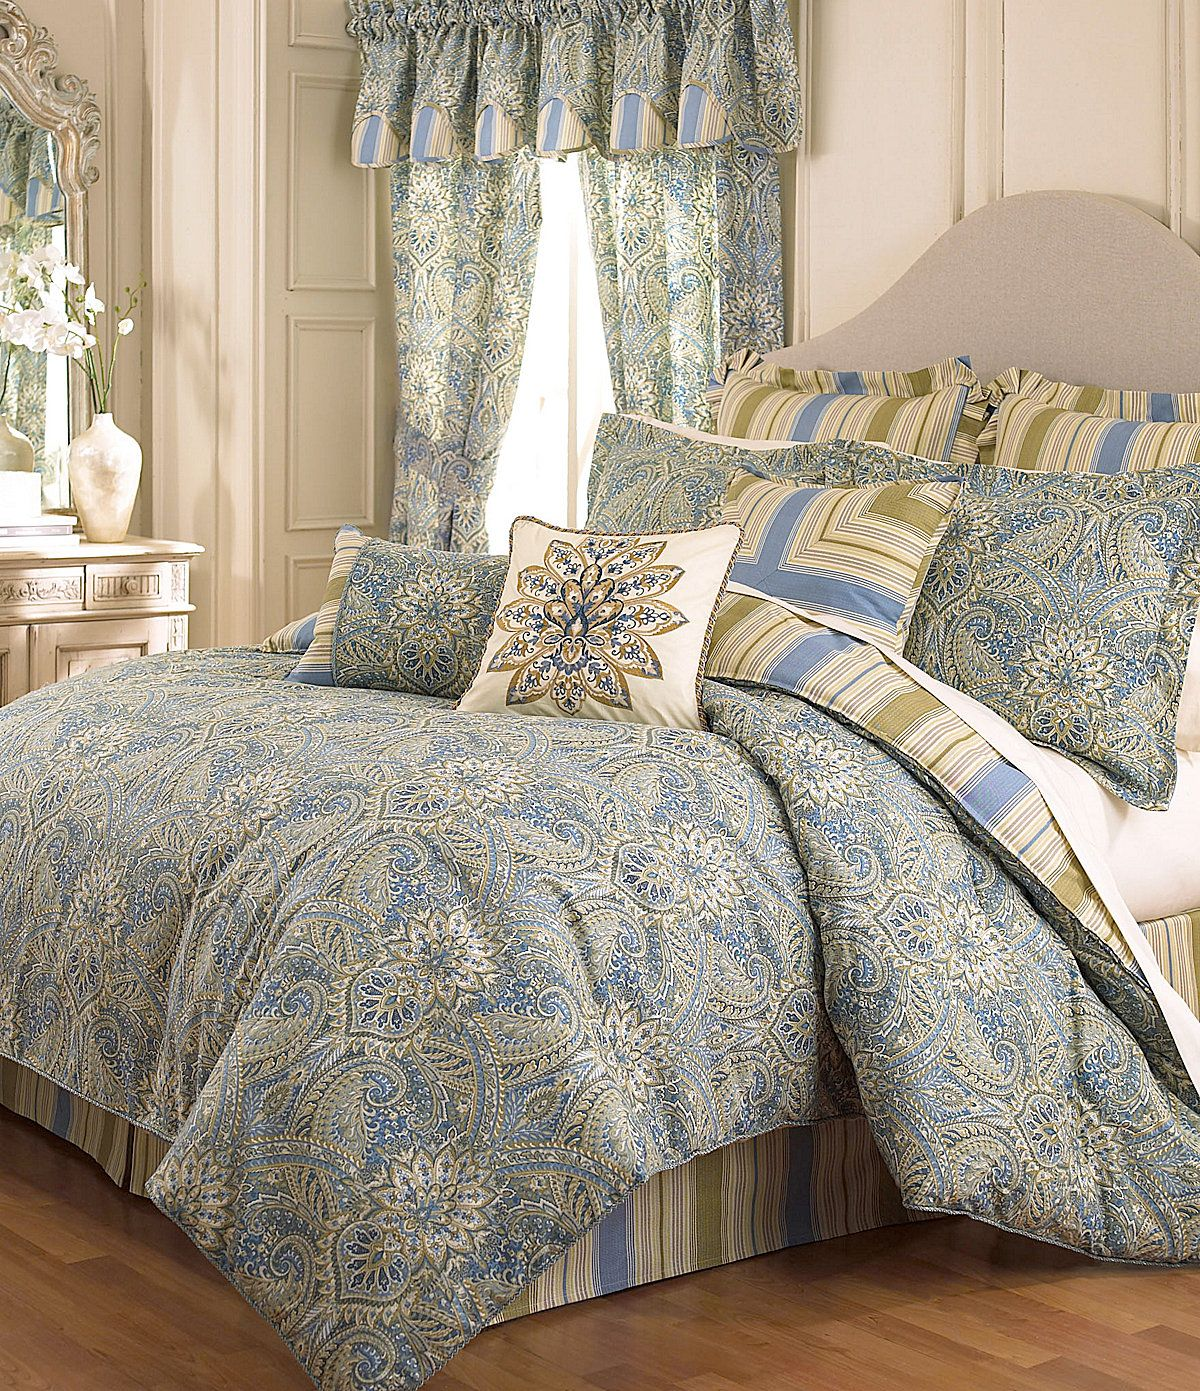 Waverly Swept Away Bedding Collection Dillards Com Blue Curtains Bedroom Colors Home